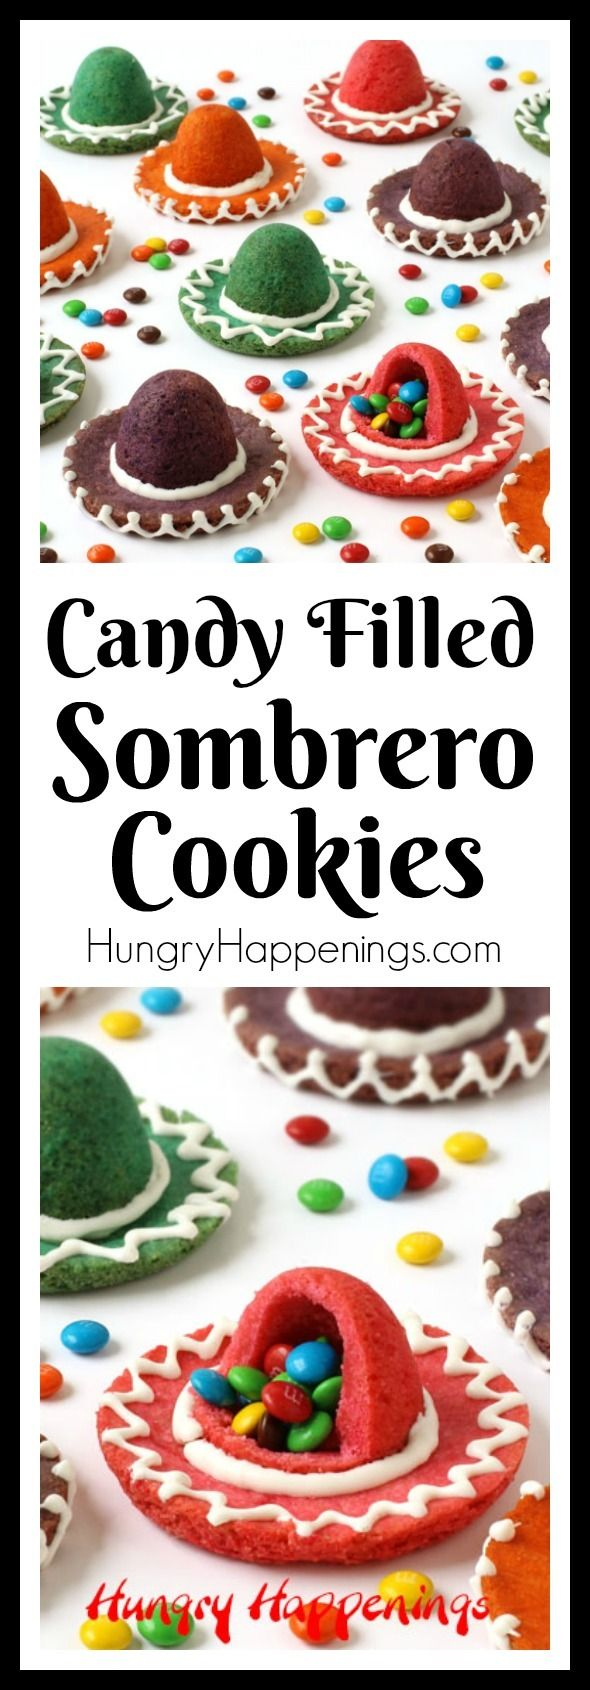 Break open one of these colorful Sombrero Cookies to reveal the surprise inside! These festive candy filled treats will be perfect for Cinco de Mayo or a Fiesta. - from hungryhappenings.com